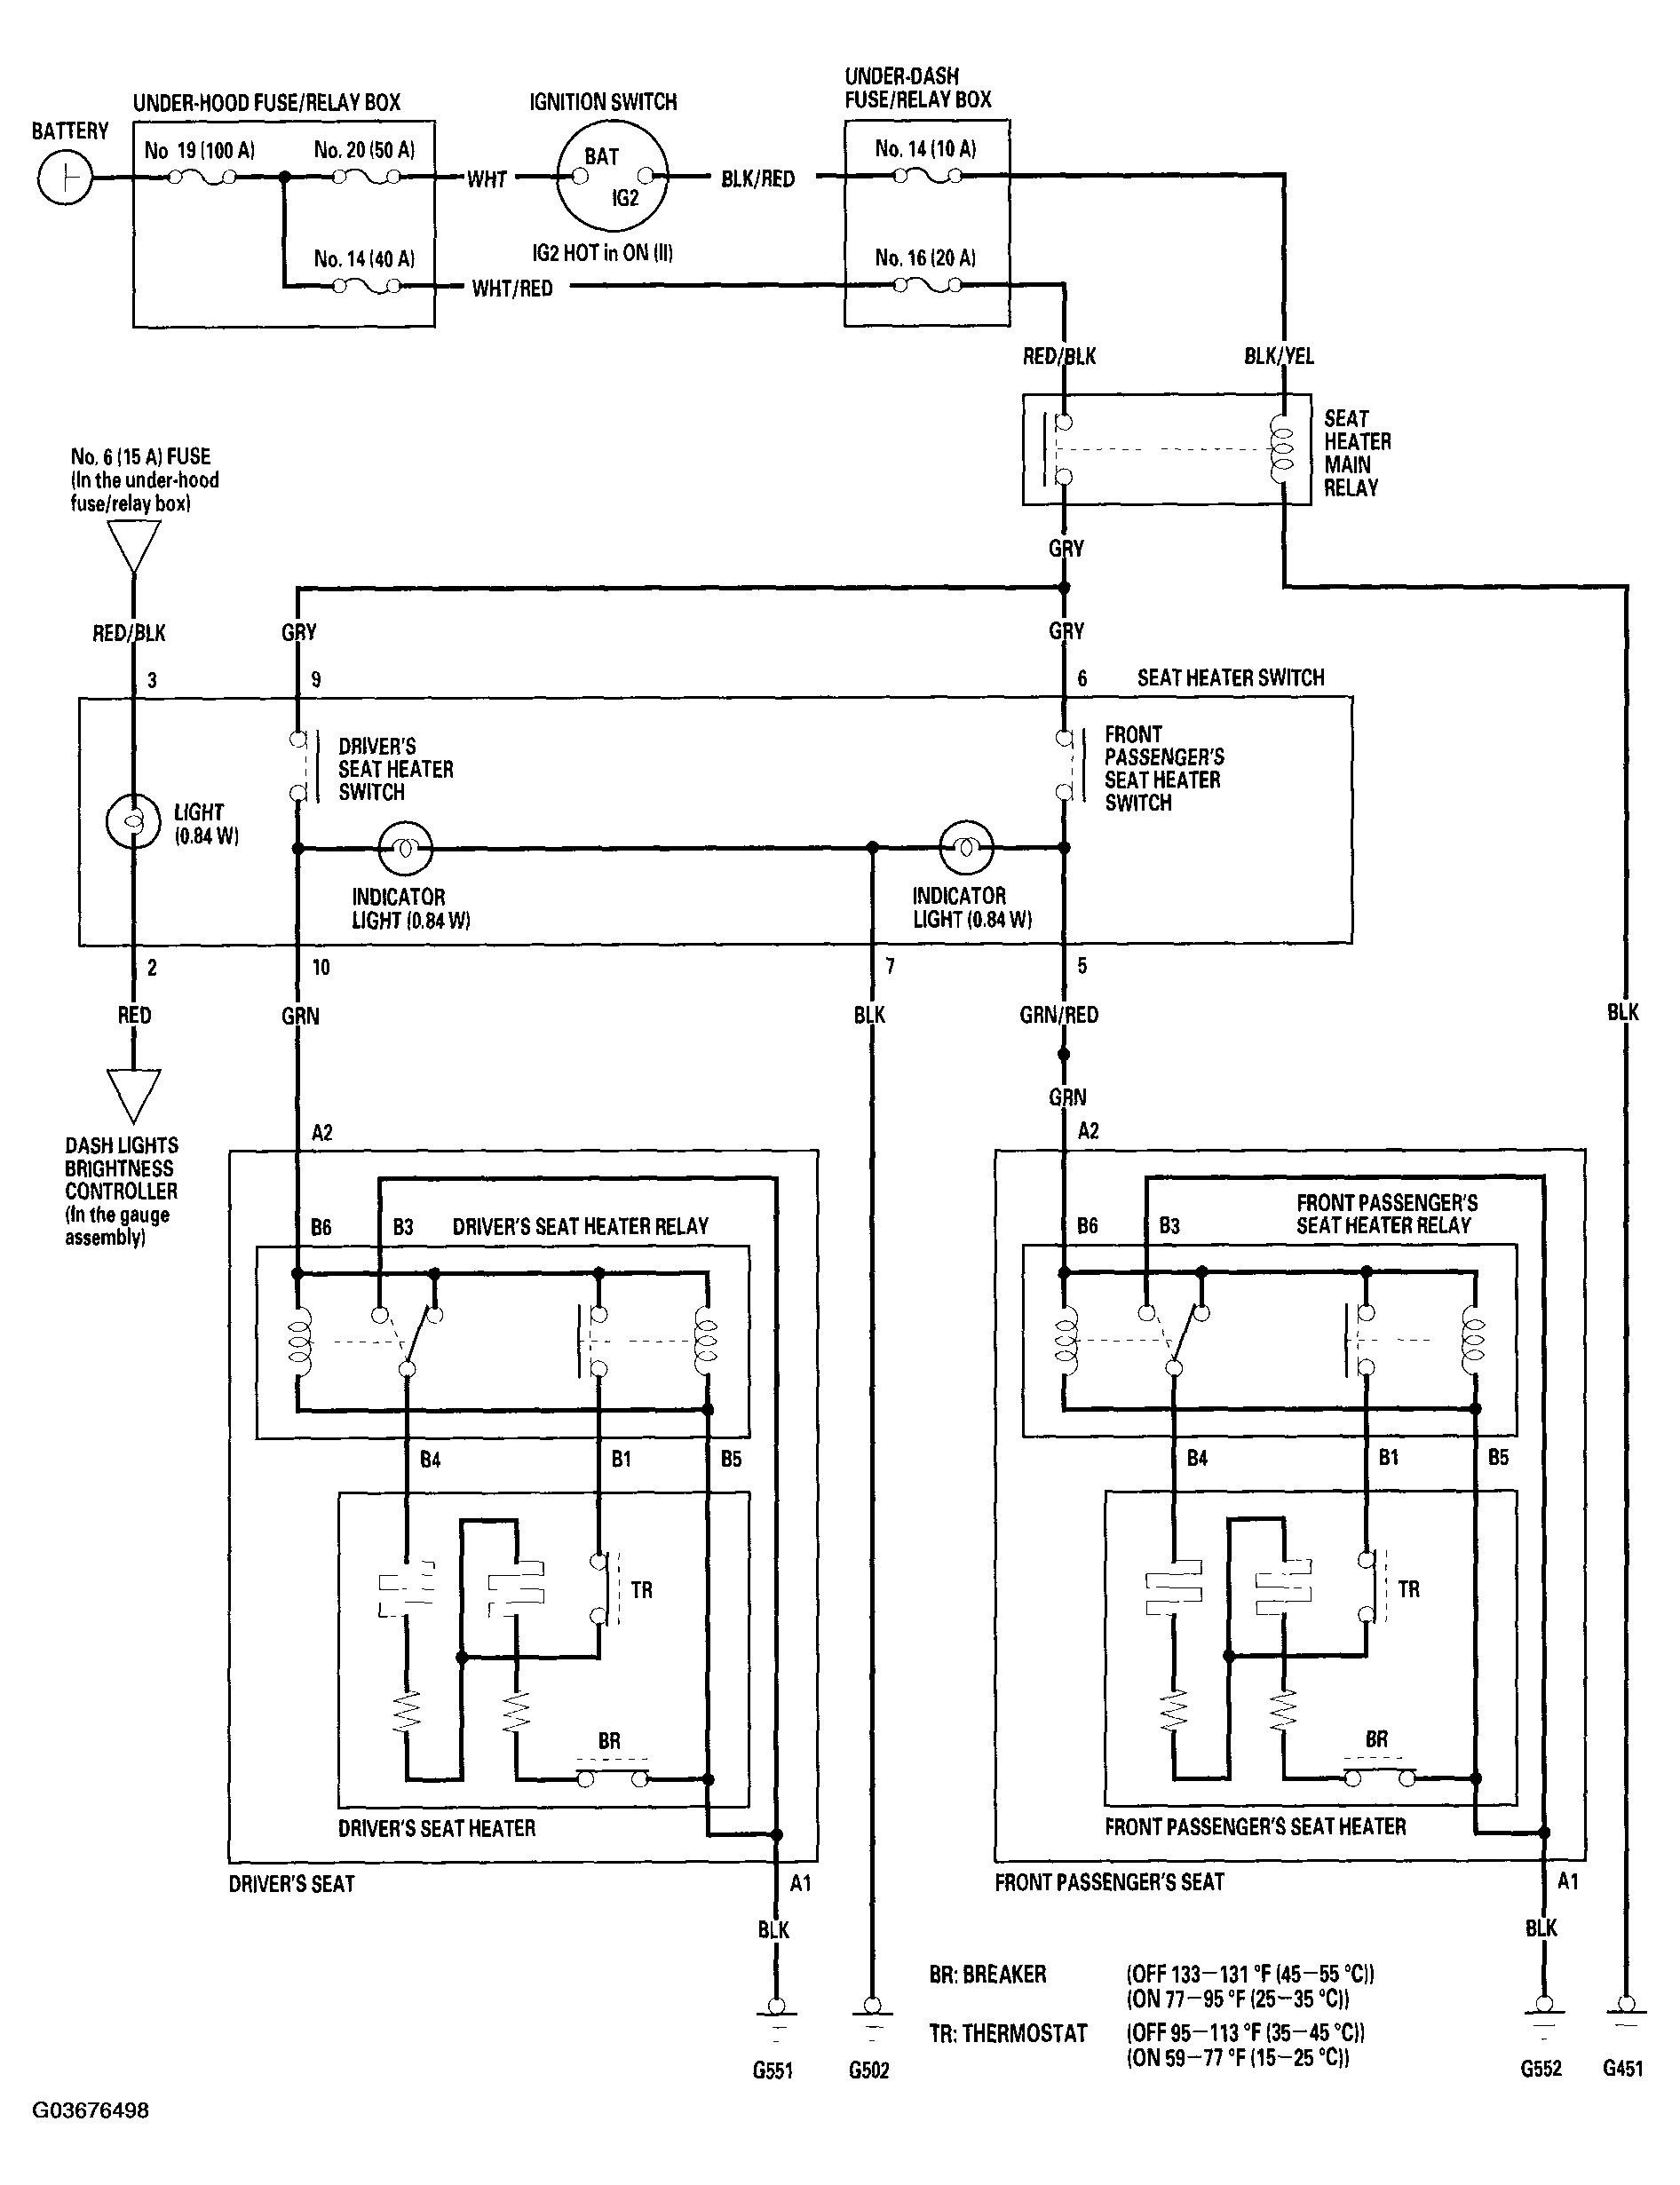 Diagram Honda Del Sol Radio Wiring Diagram Full Version Hd Quality Wiring Diagram Blogxhearn Facilesicuro It